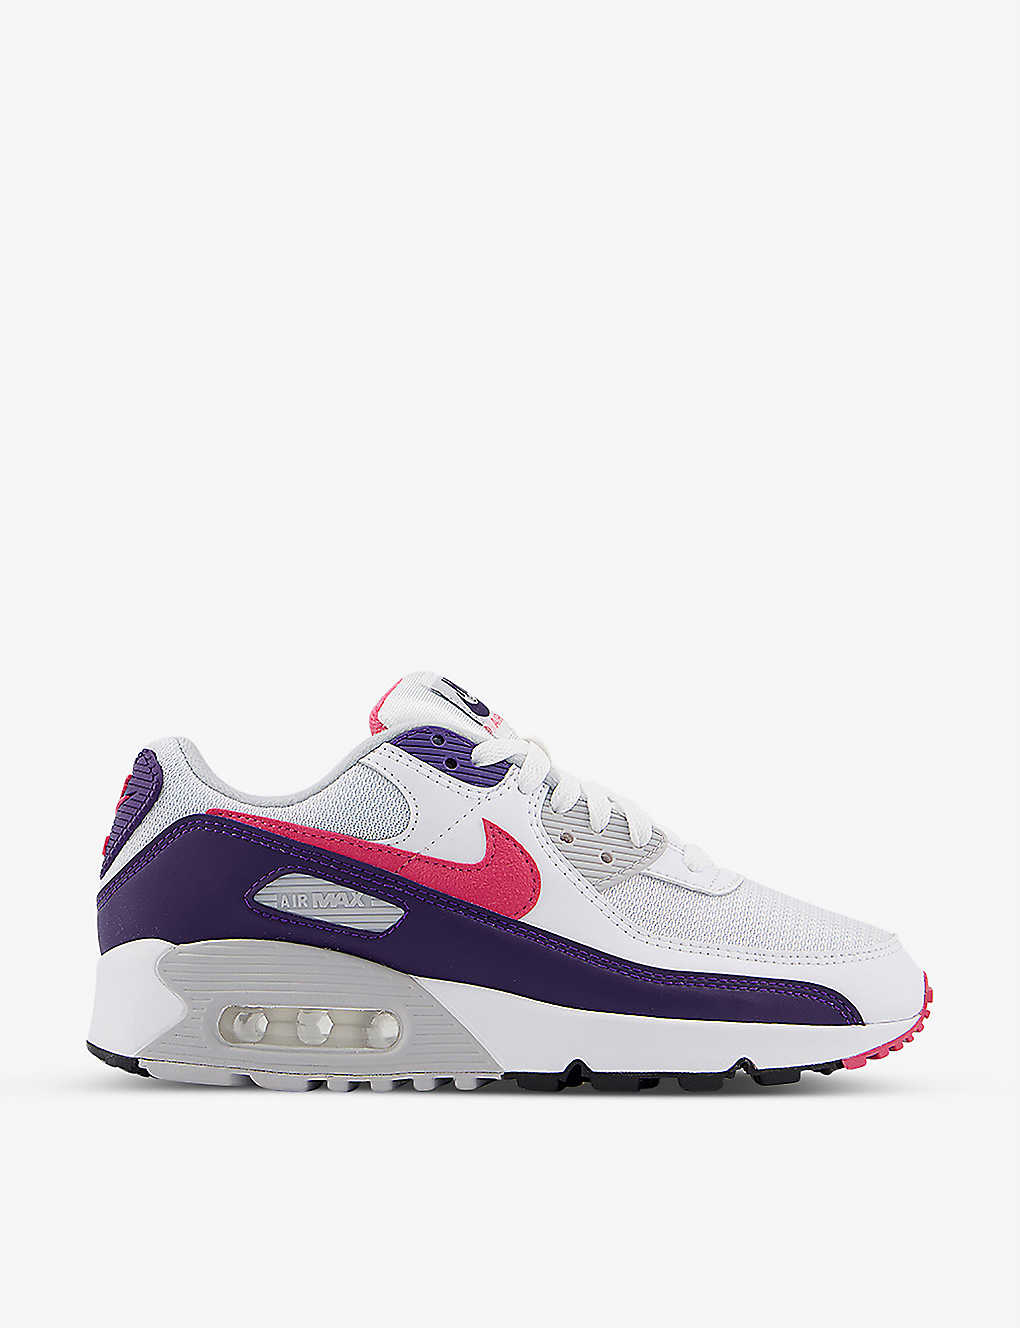 Nike Leathers AIR MAX III LEATHER AND TEXTILE TRAINERS